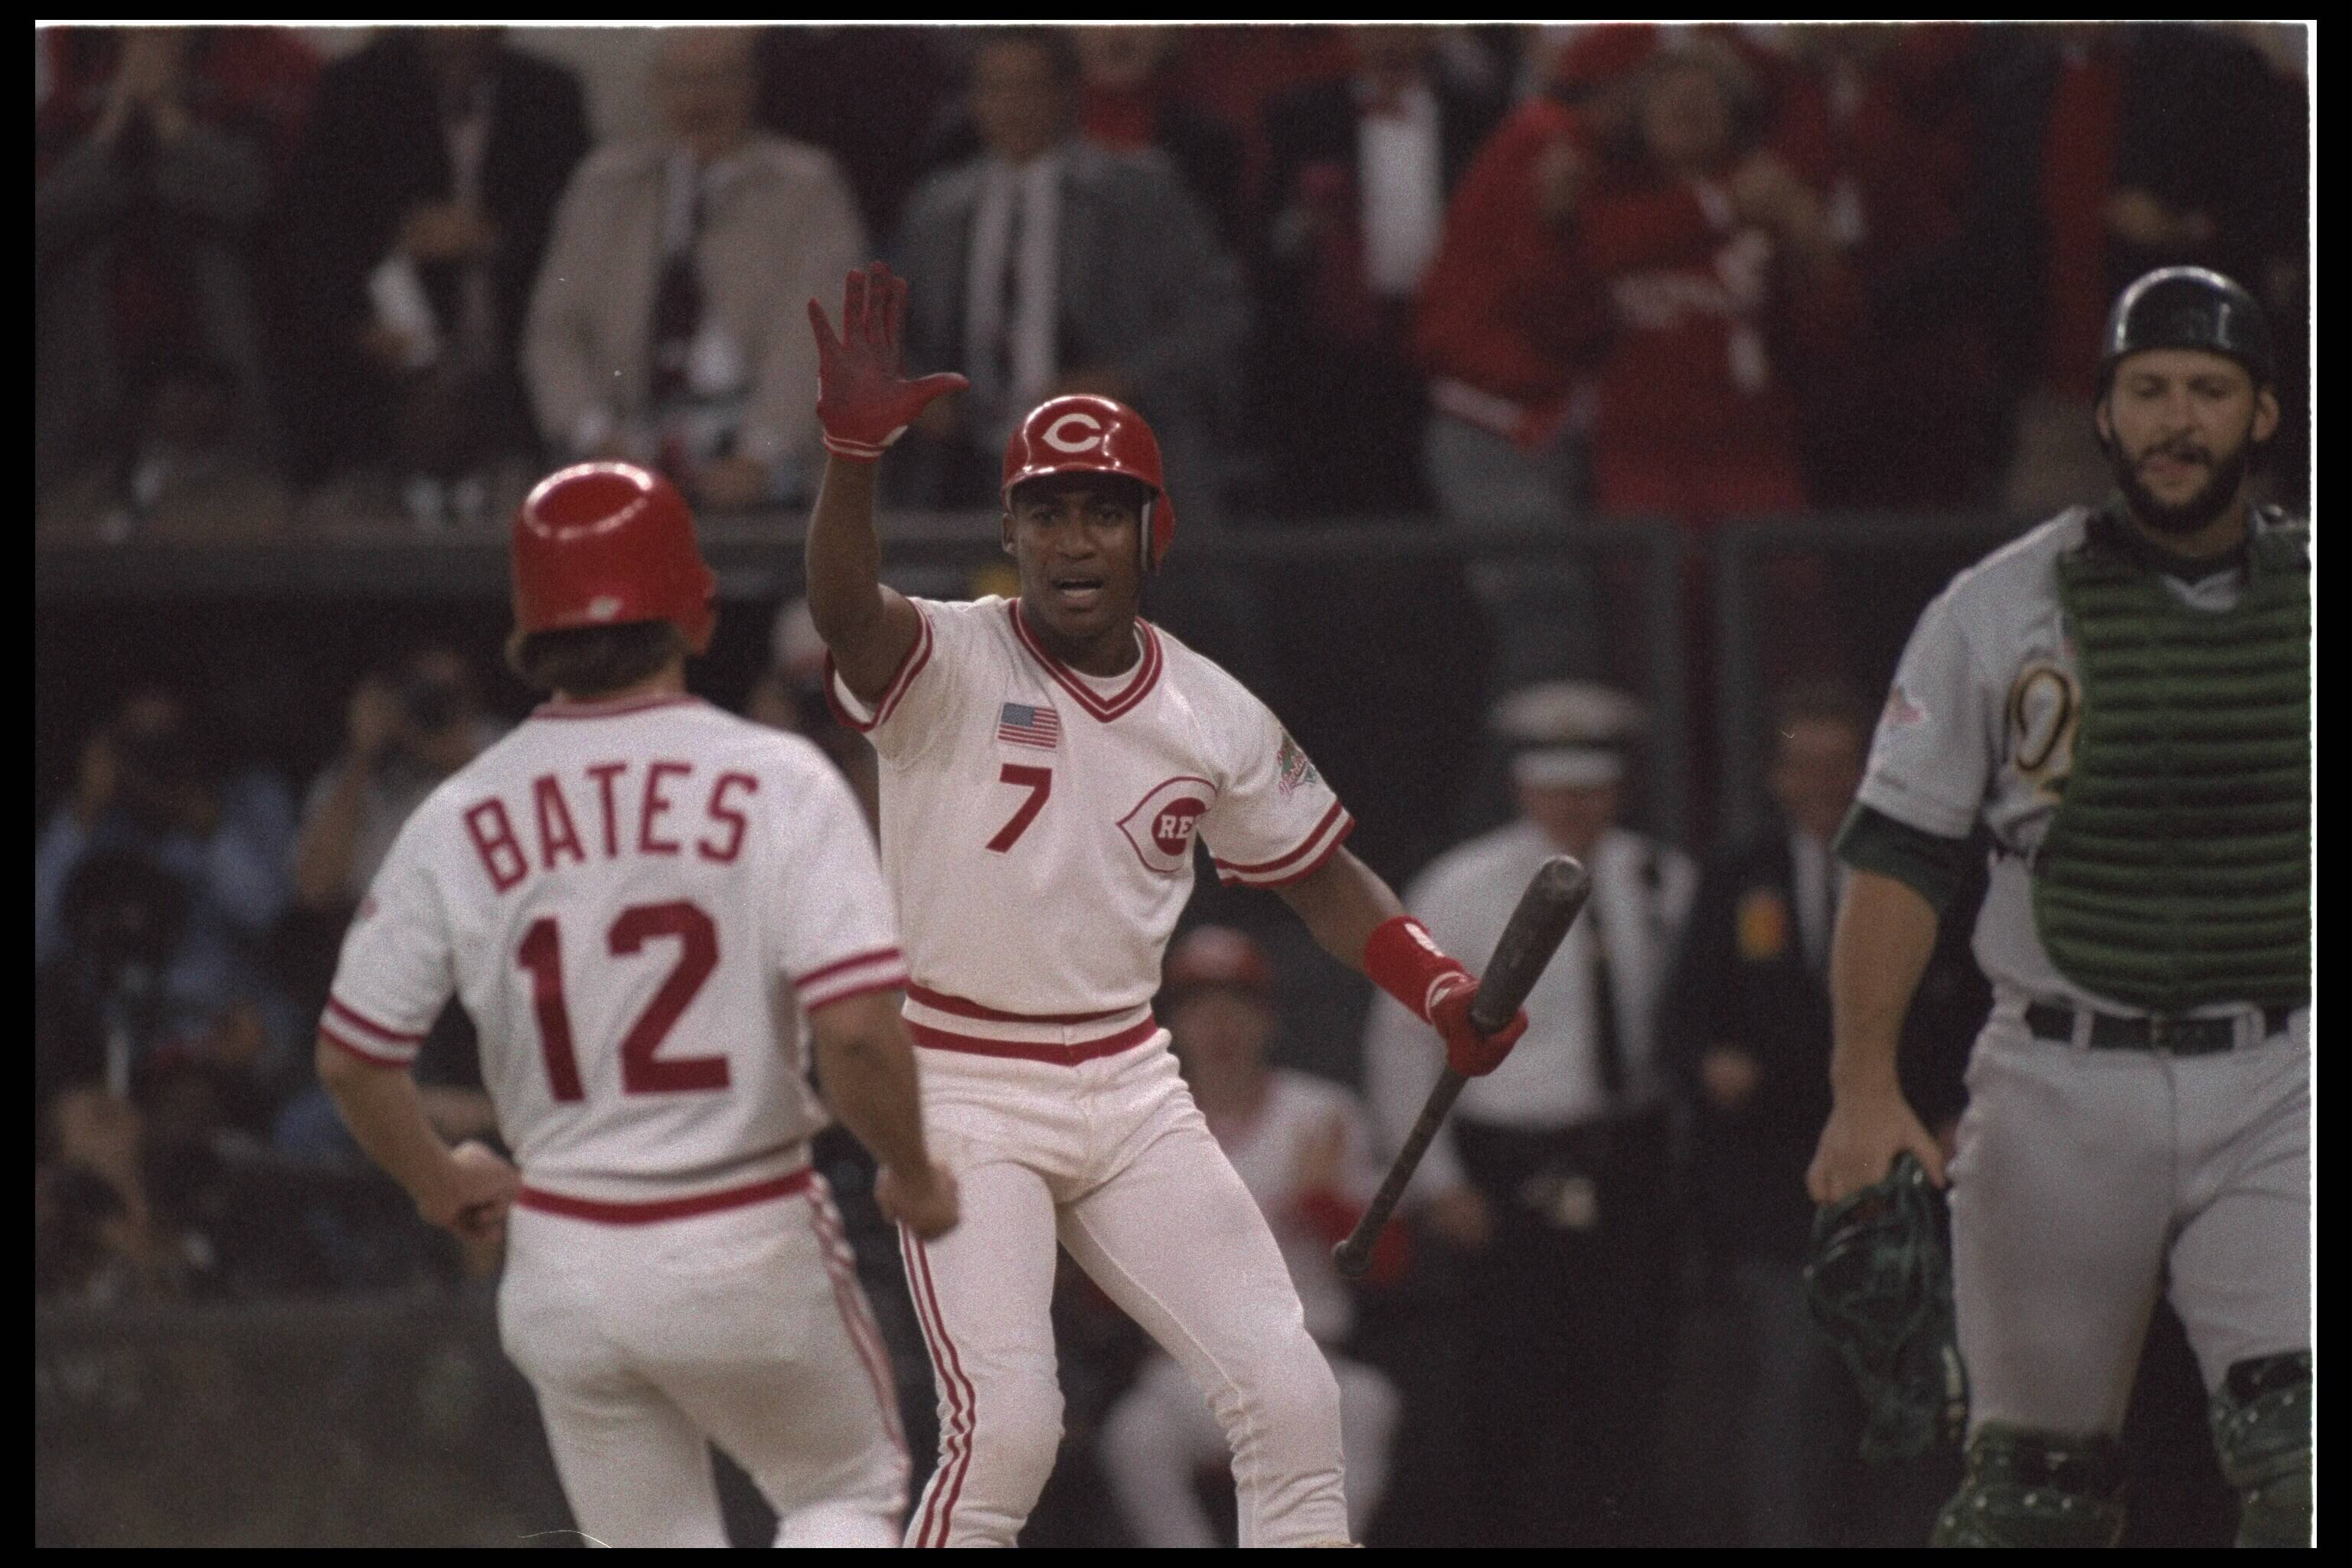 #7 and #12 Bates of the Cincinnati Reds celebrate becoming the World Series winner